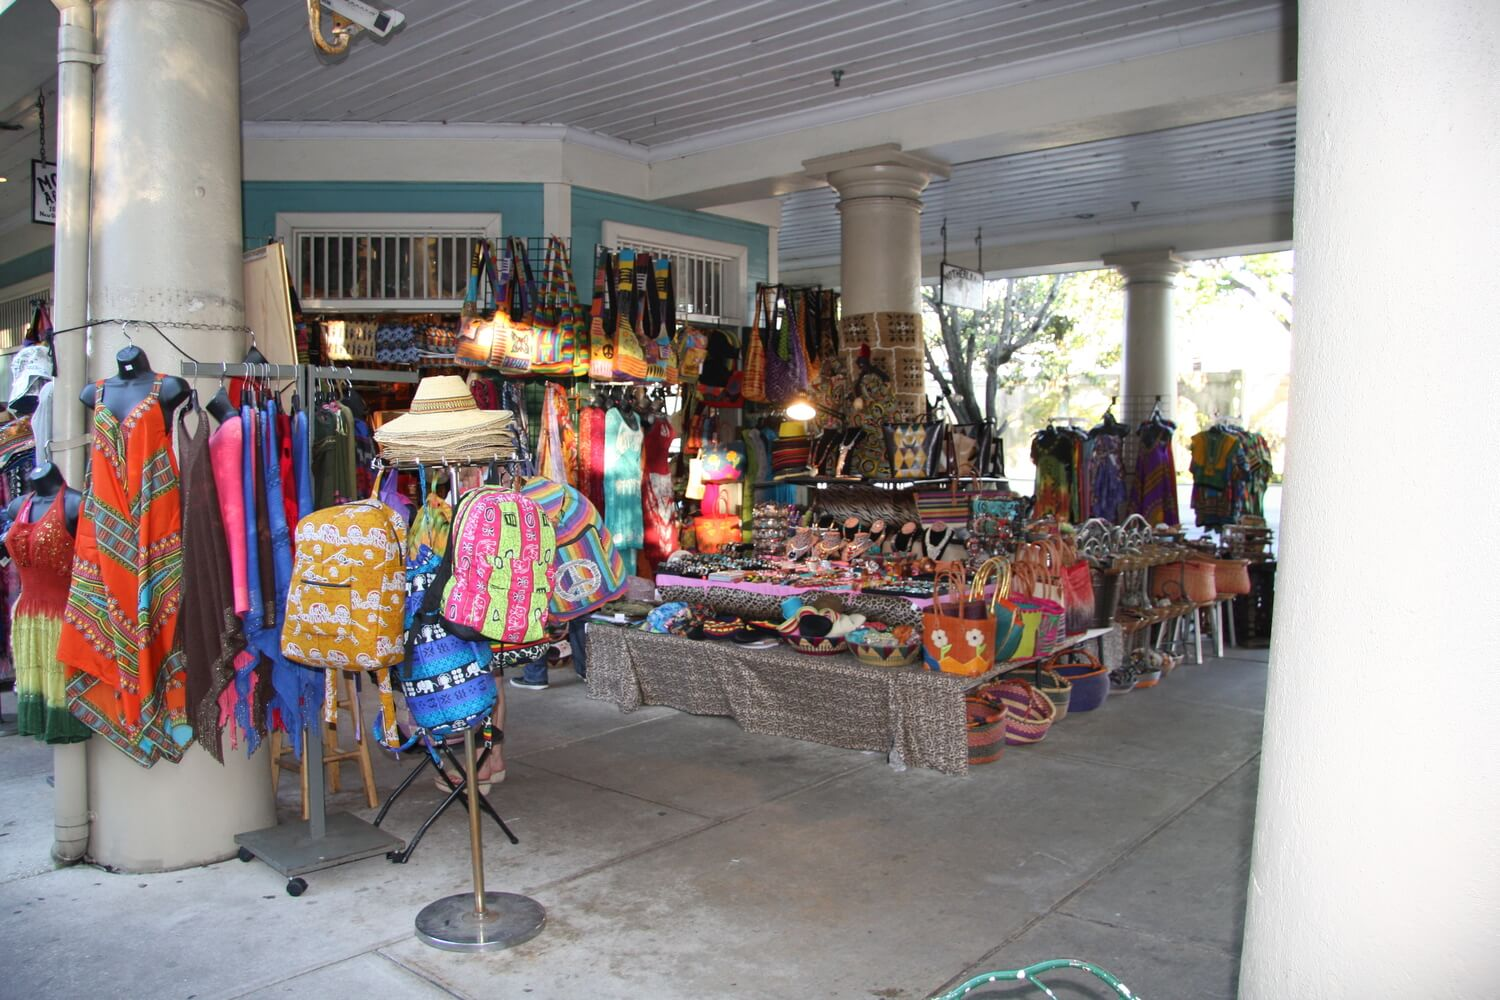 The French Market in New Orlean's French Quarter. #10 in Best Things to Do in the French Quarter.